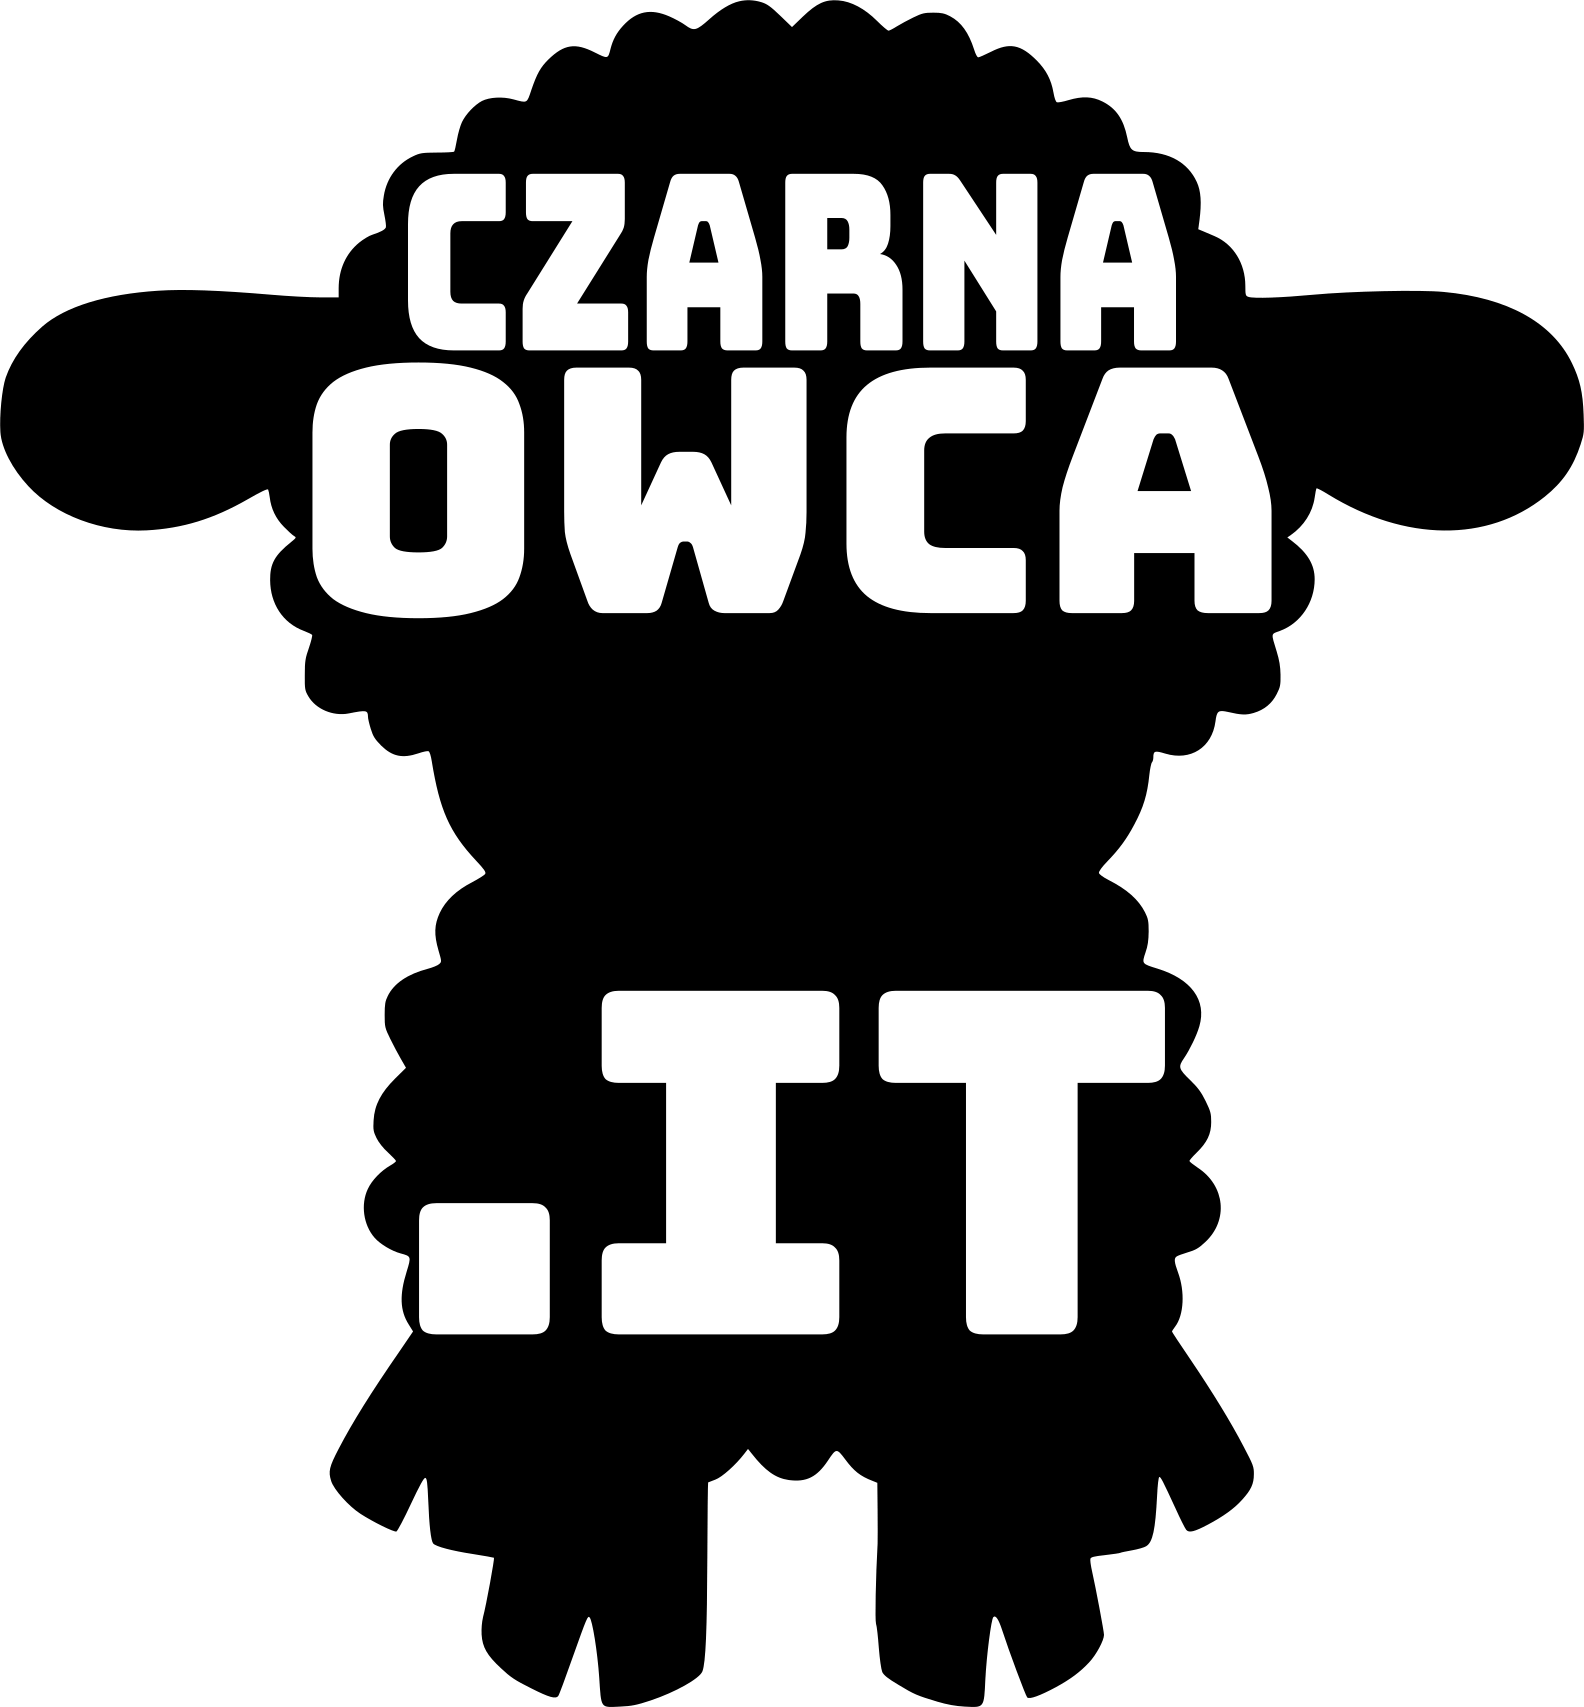 CzarnaOwca.IT